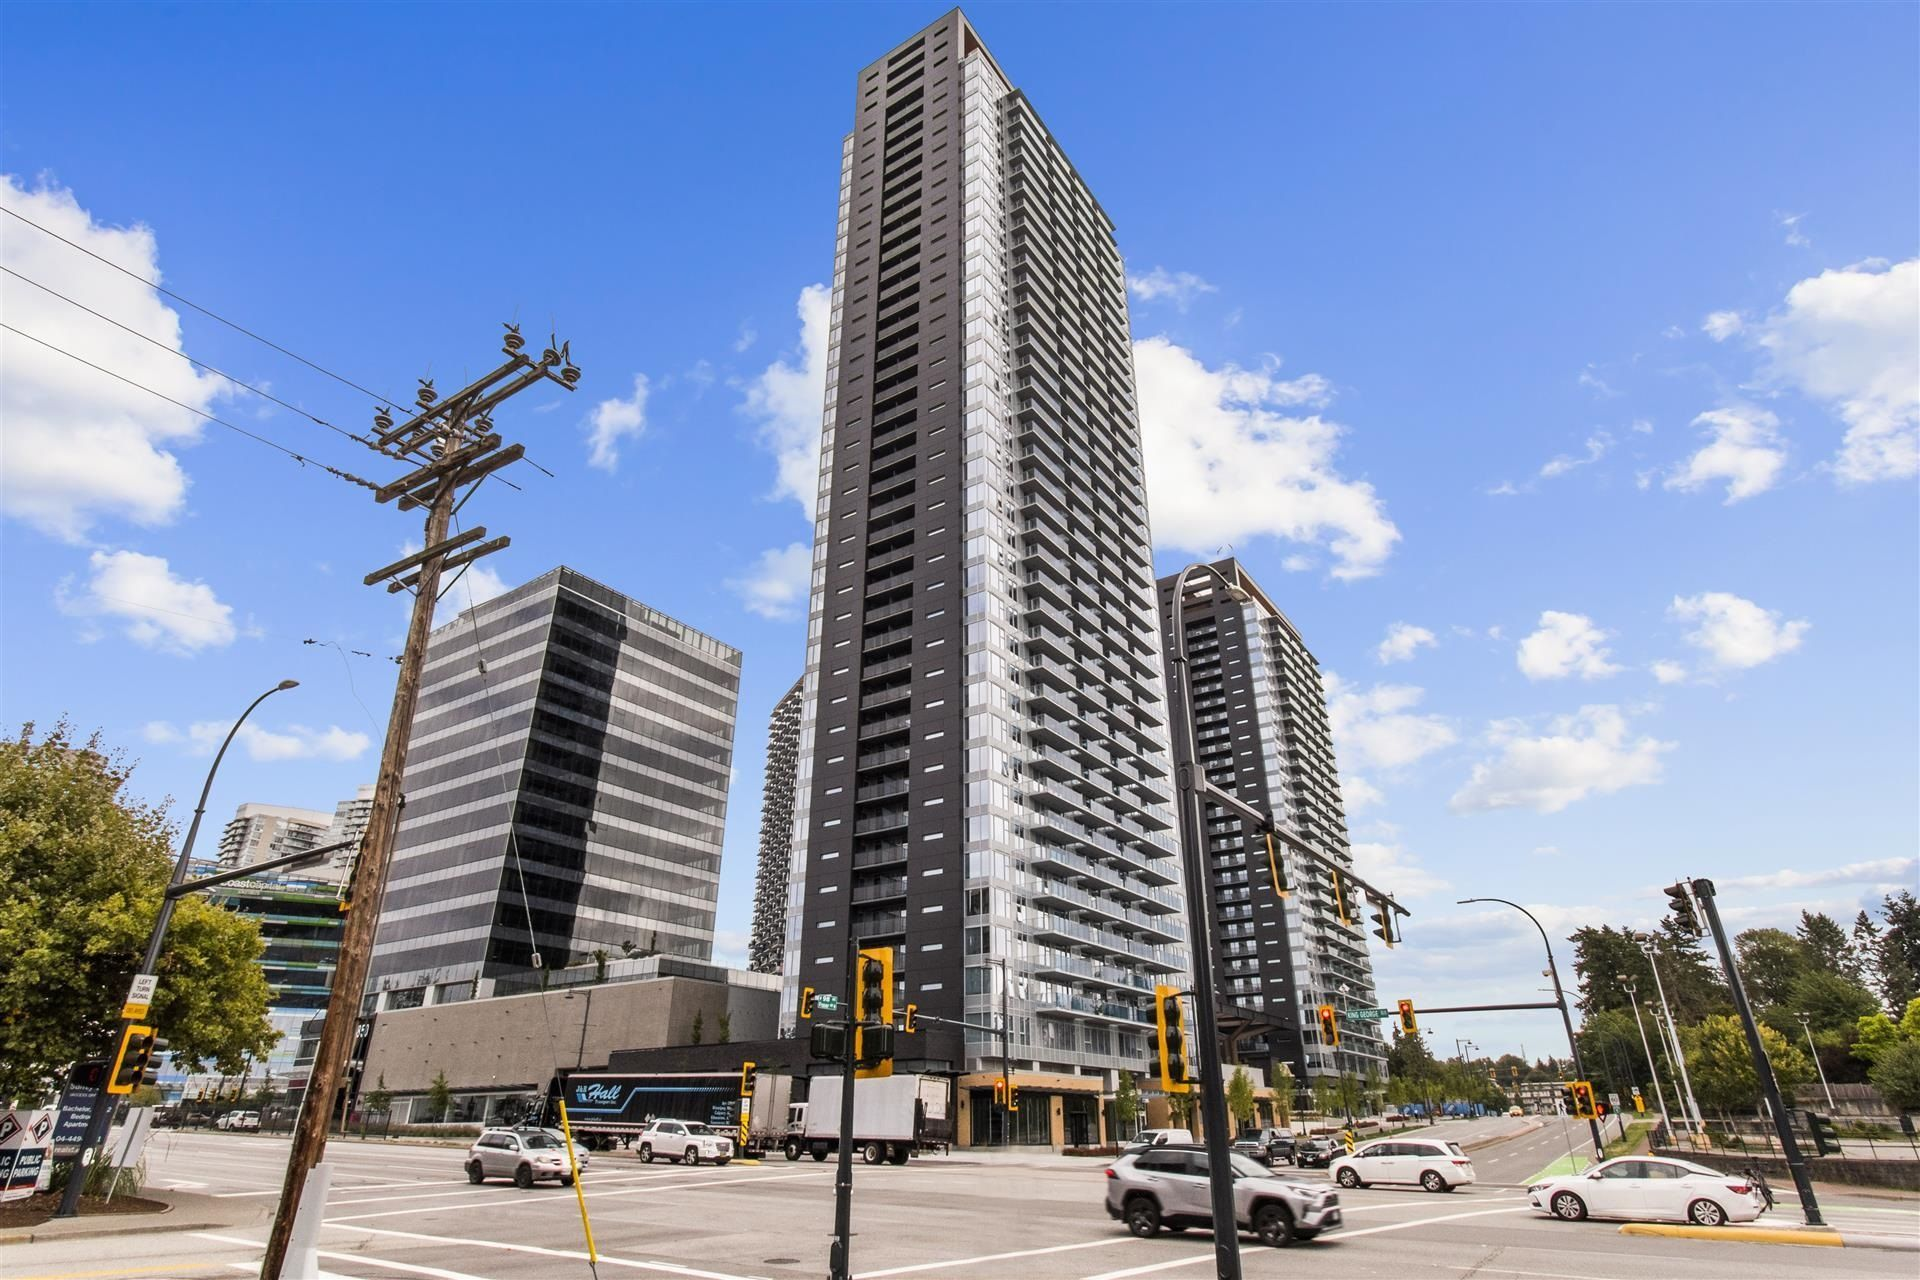 """Main Photo: 2912 13615 FRASER Highway in Surrey: Queen Mary Park Surrey Condo for sale in """"KING GEORGE HUB ONE"""" : MLS®# R2617659"""